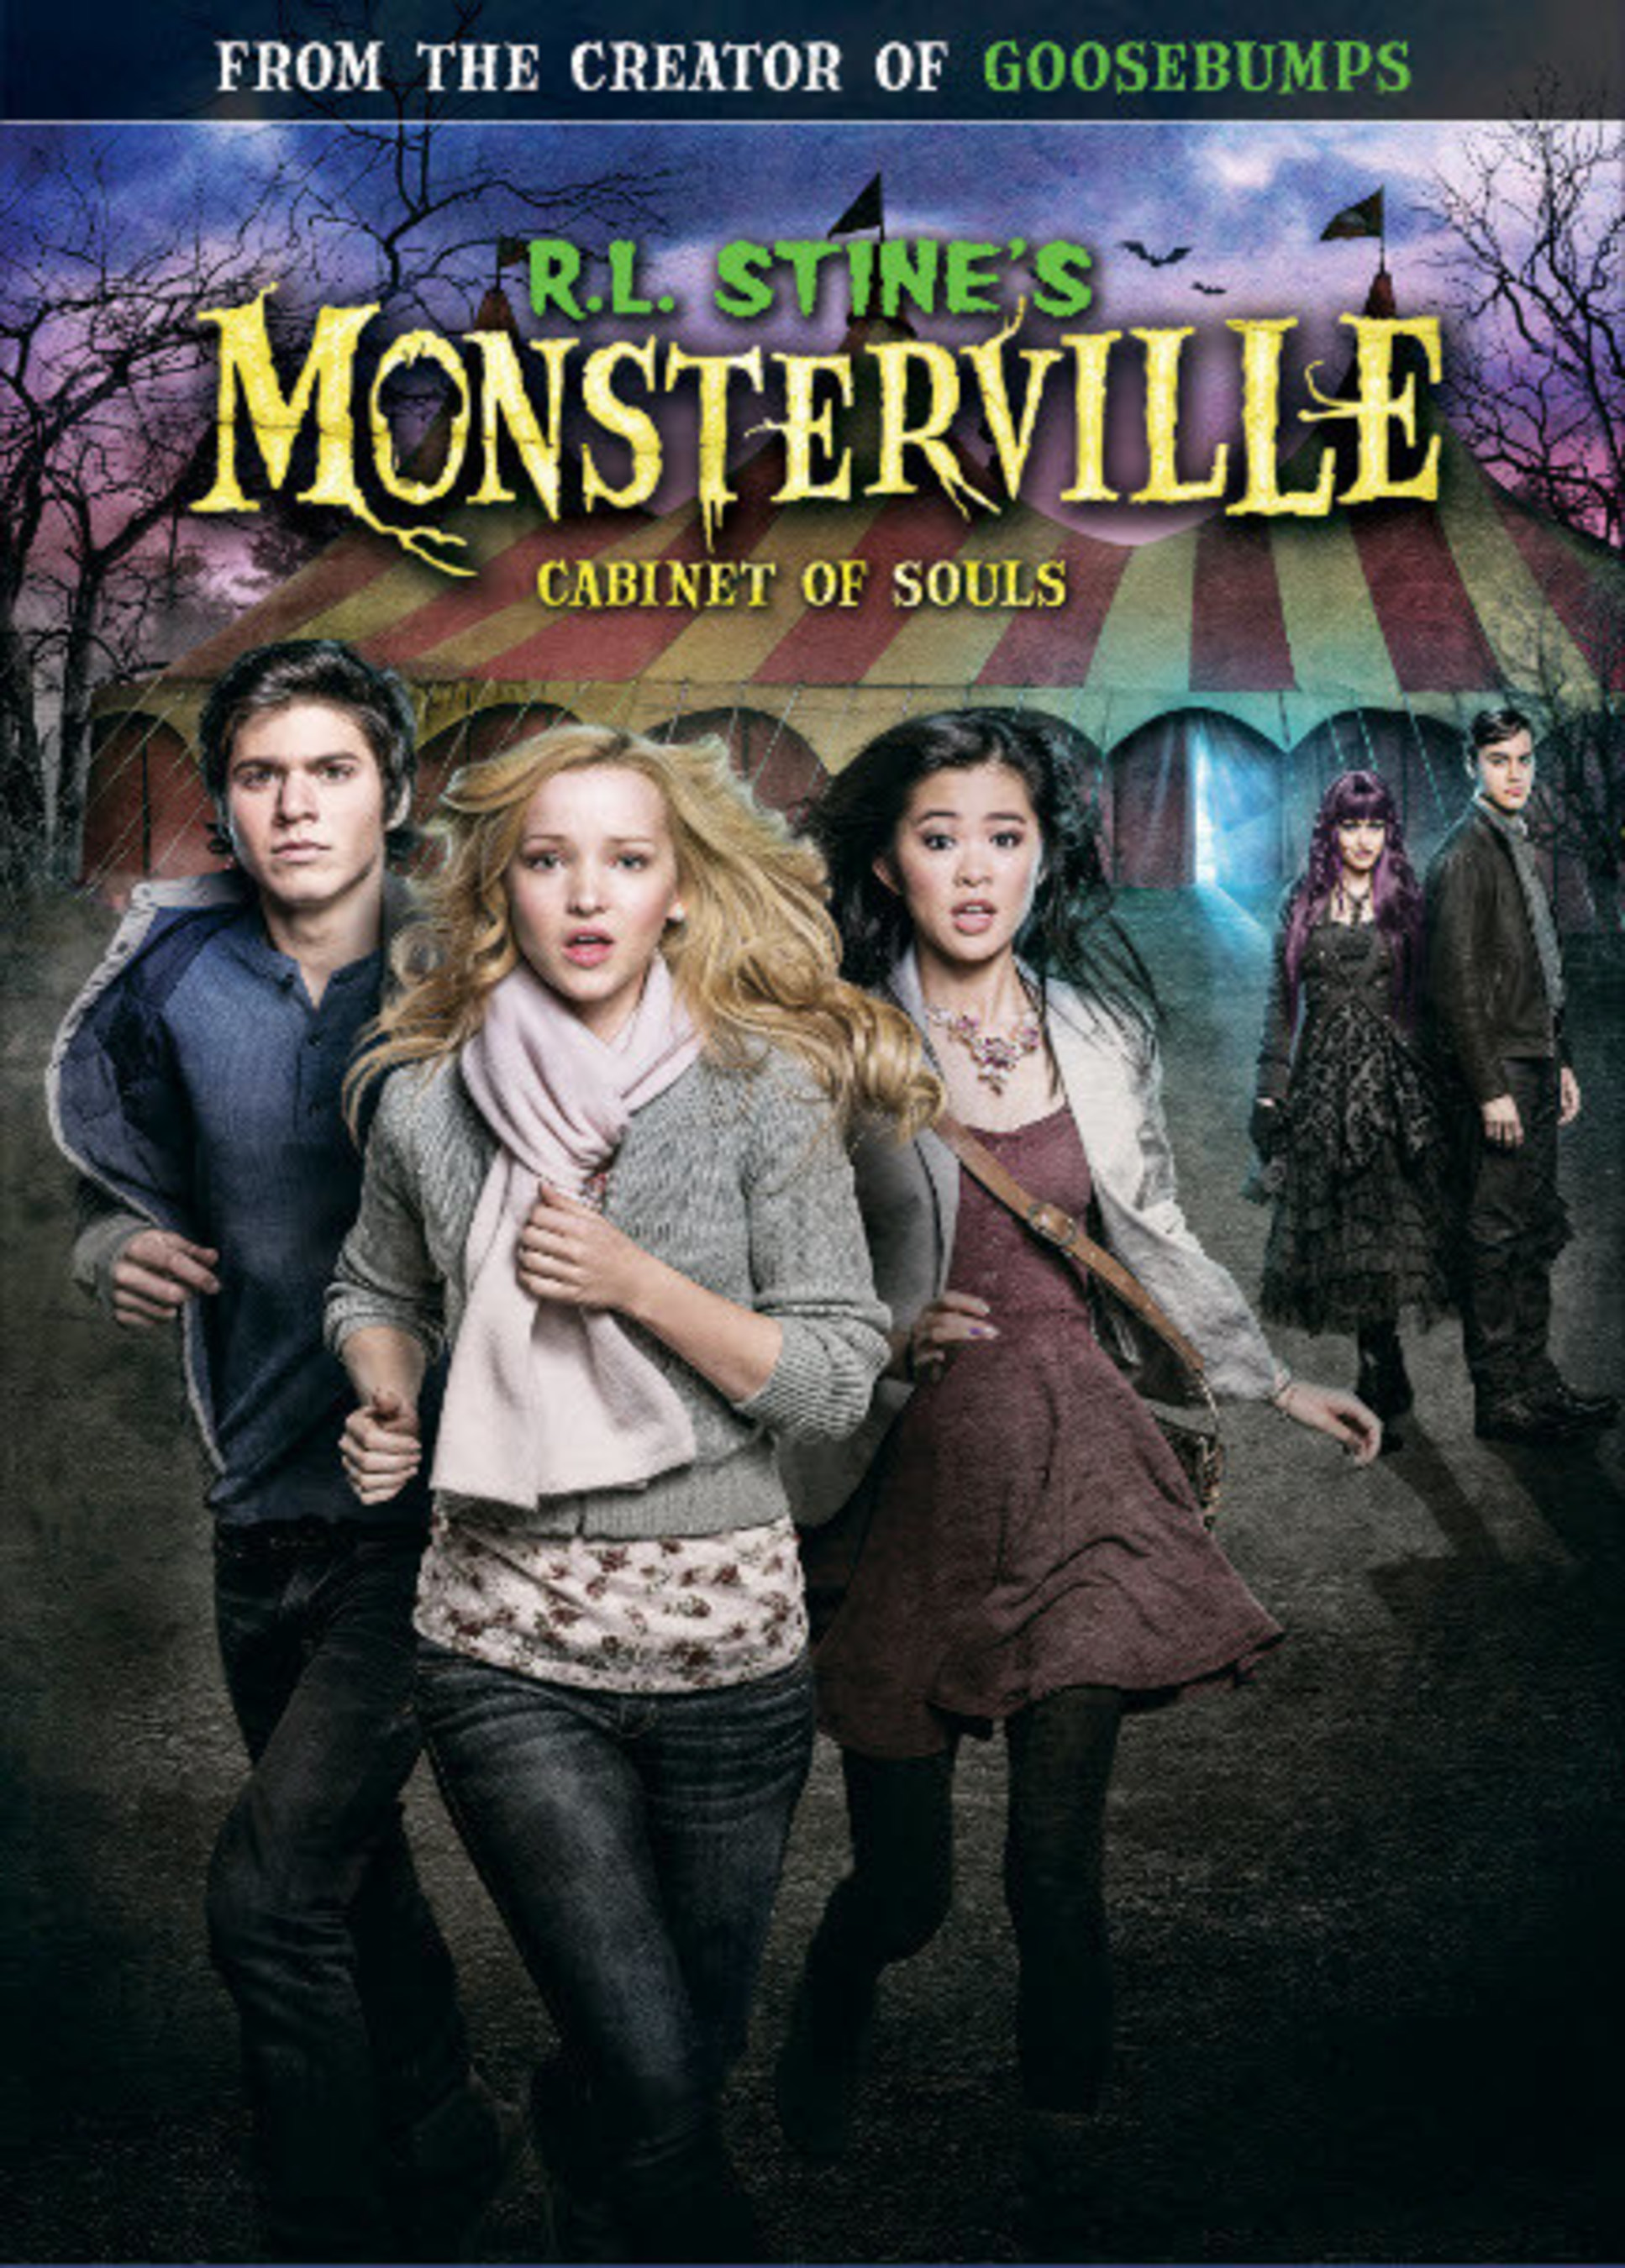 From Universal Pictures Home Entertainment: R.L Stine's Monsterville: Cabinet of Souls